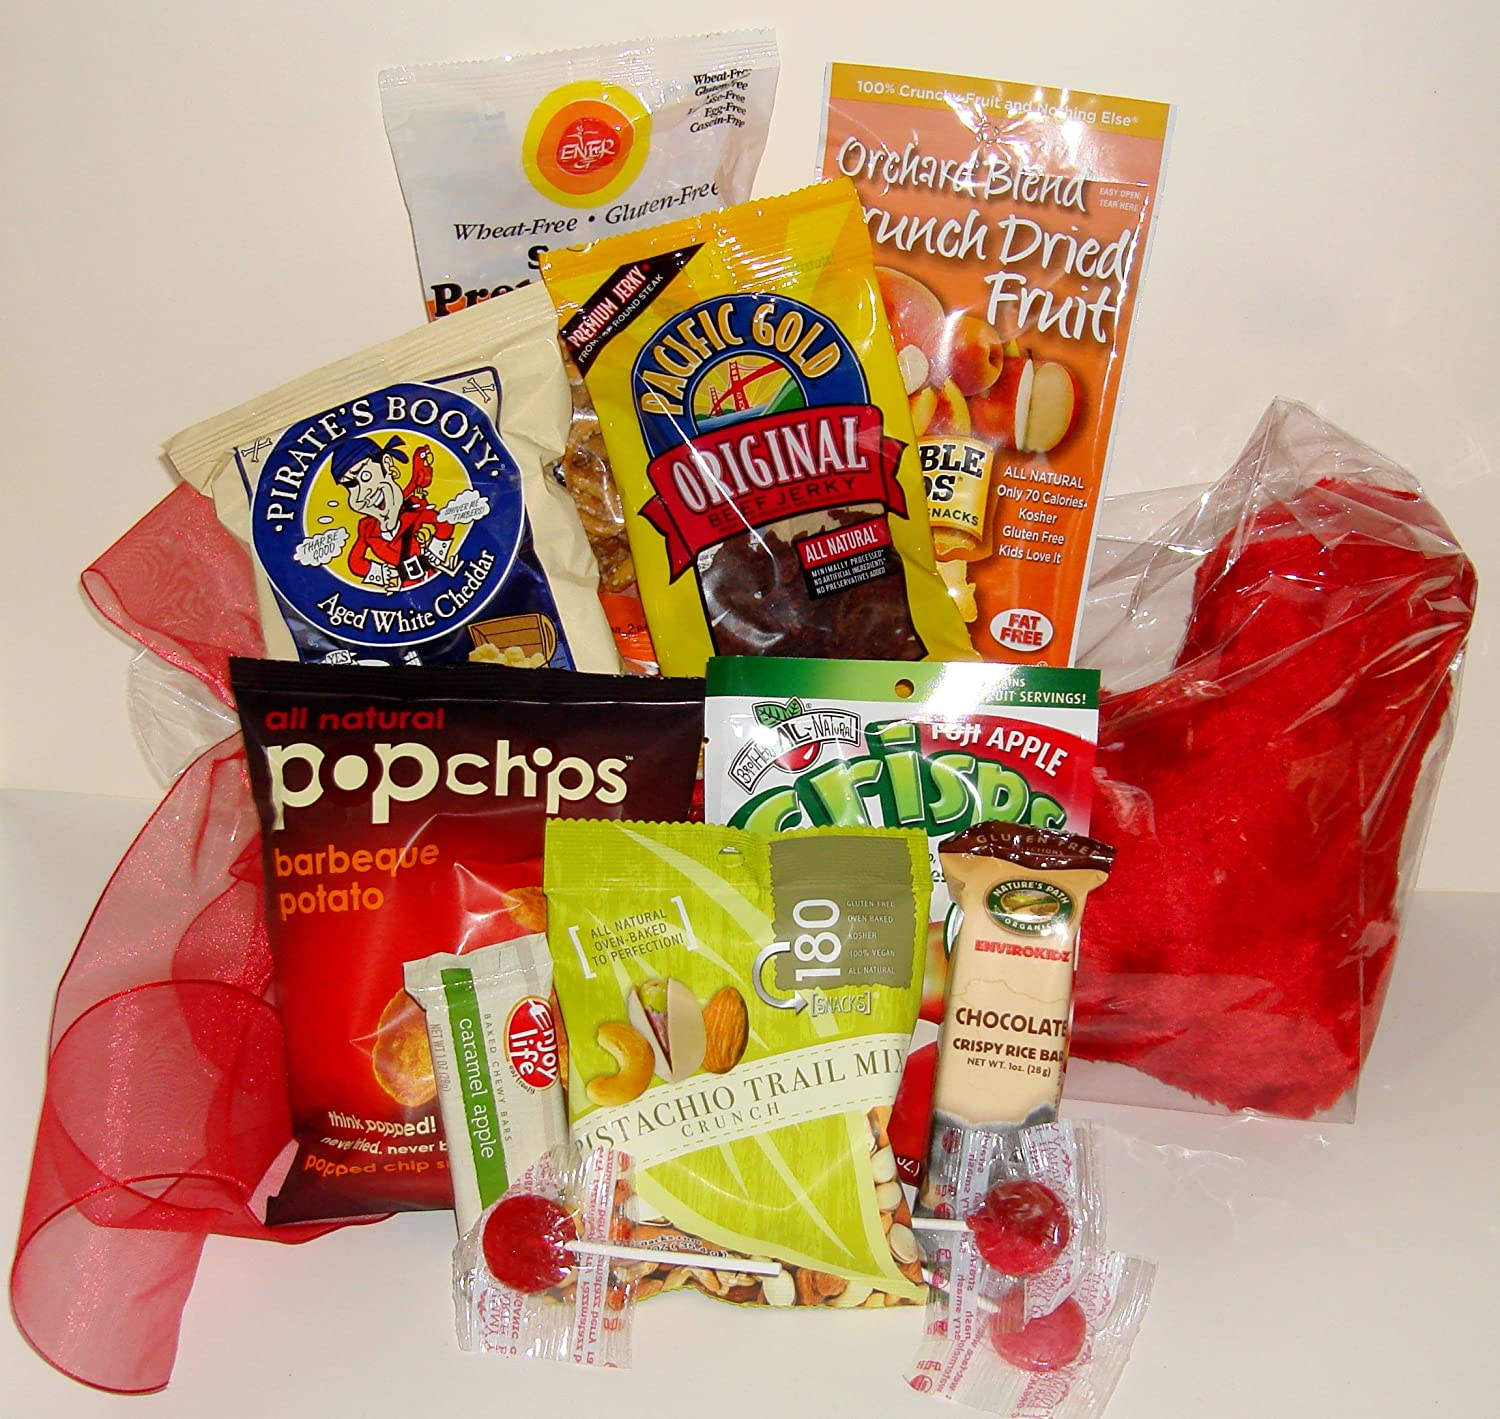 Amazon stuffed christmas holiday stocking gourmet gift amazon stuffed christmas holiday stocking gourmet gift basket gluten free wheat free trans fat free organic gourmet candy gifts grocery negle Gallery